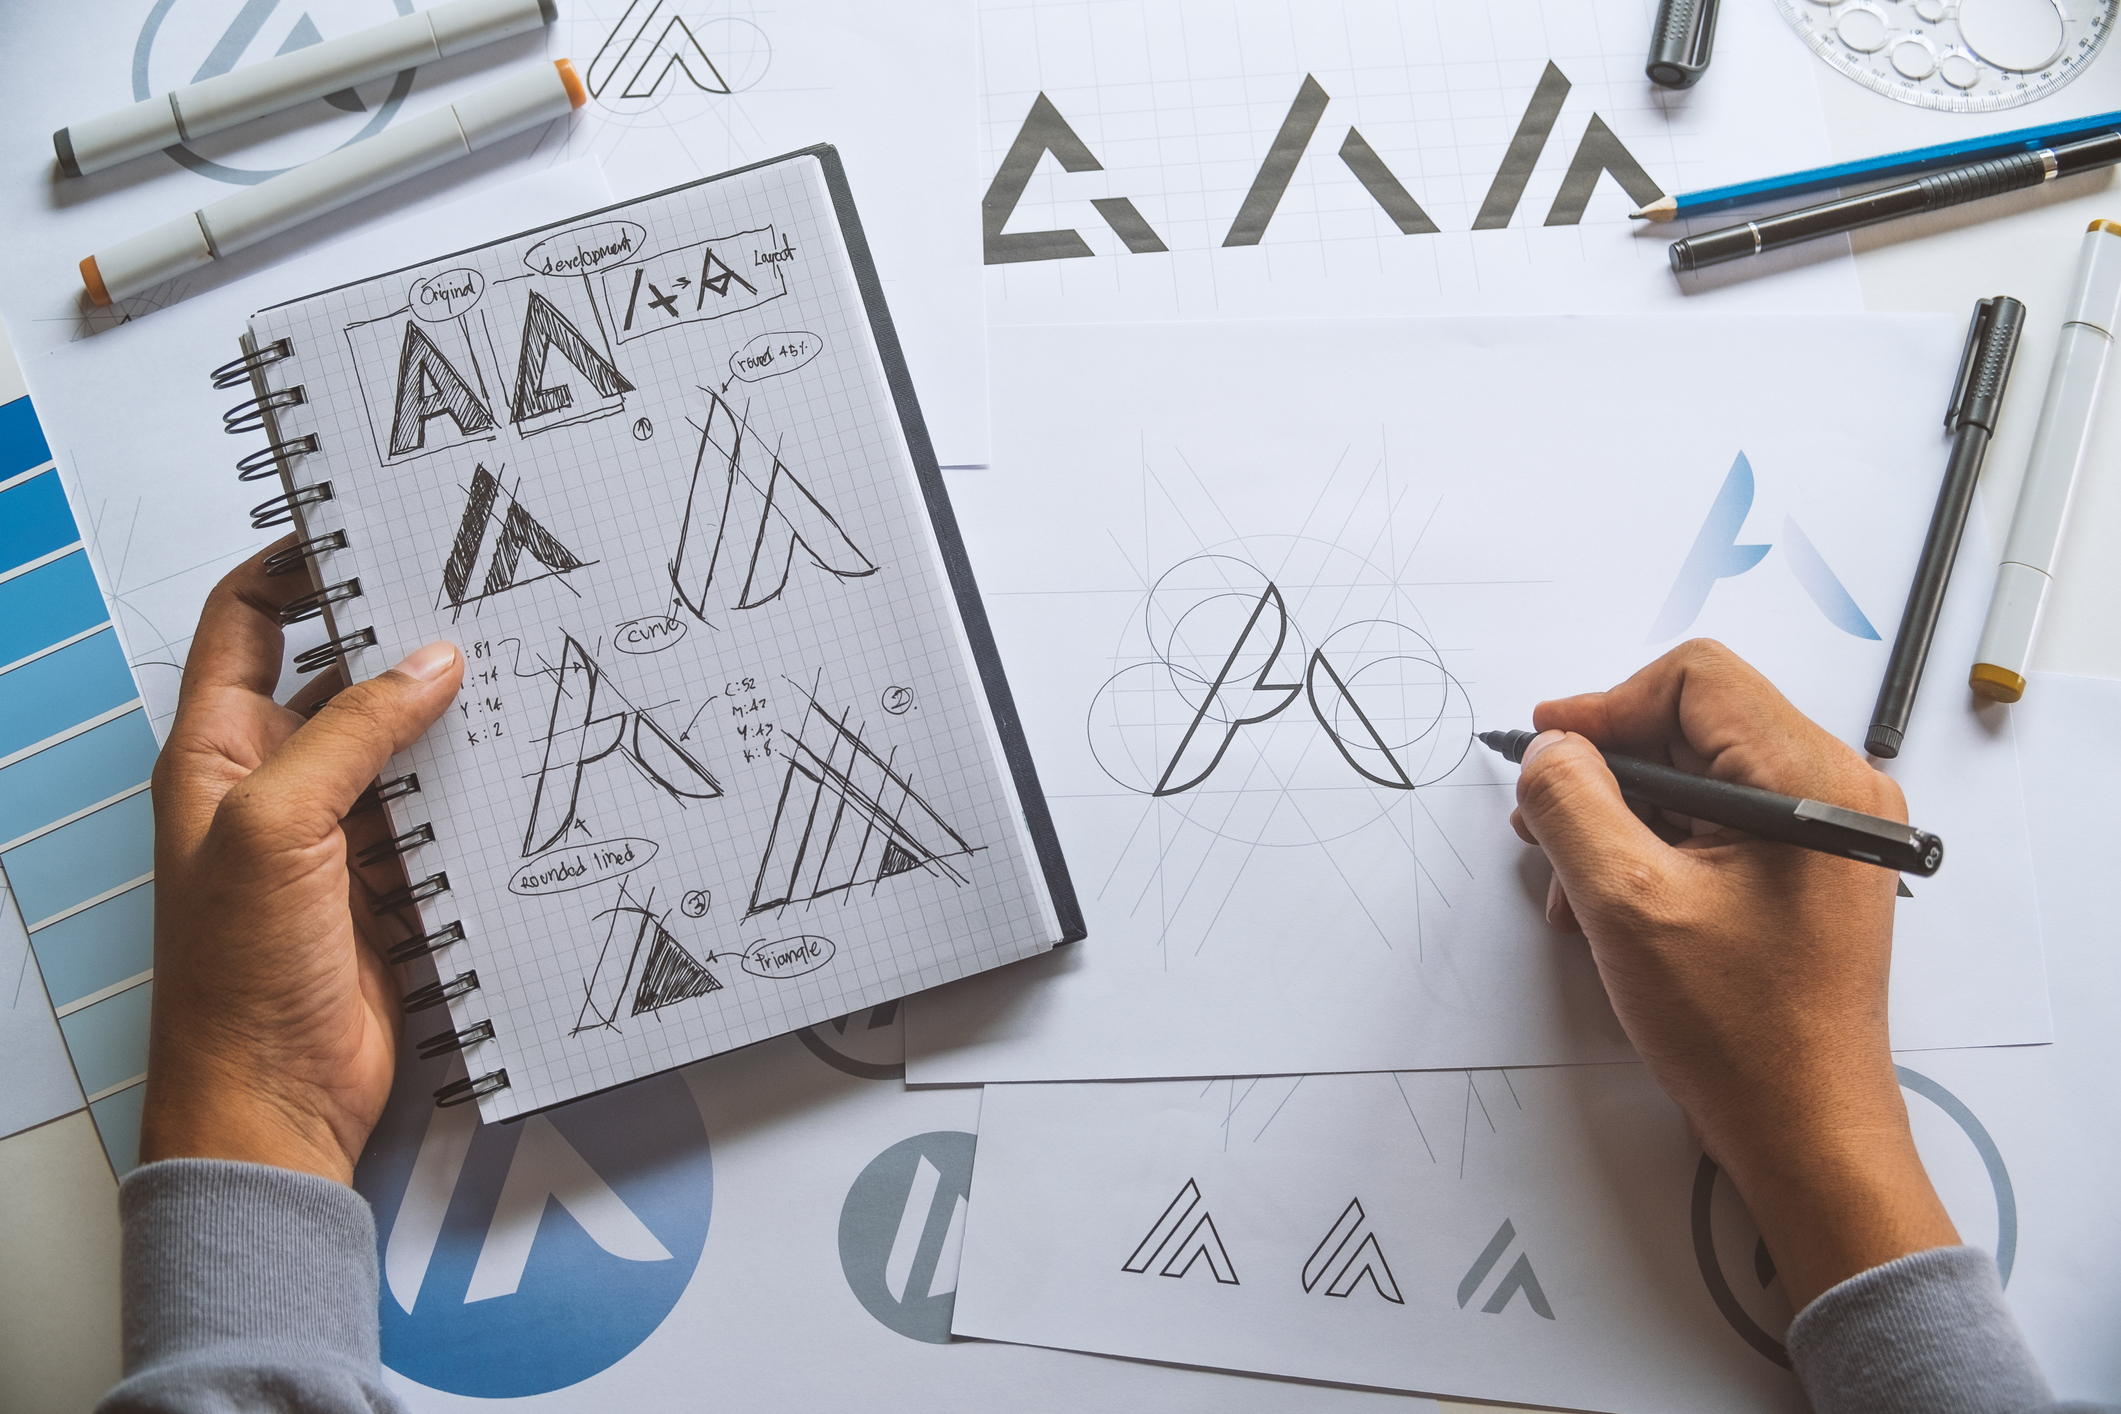 Asking The Right Brand Logo Survey Questions - How Helpfull Surveys Can Improve Your Brand Logo Design